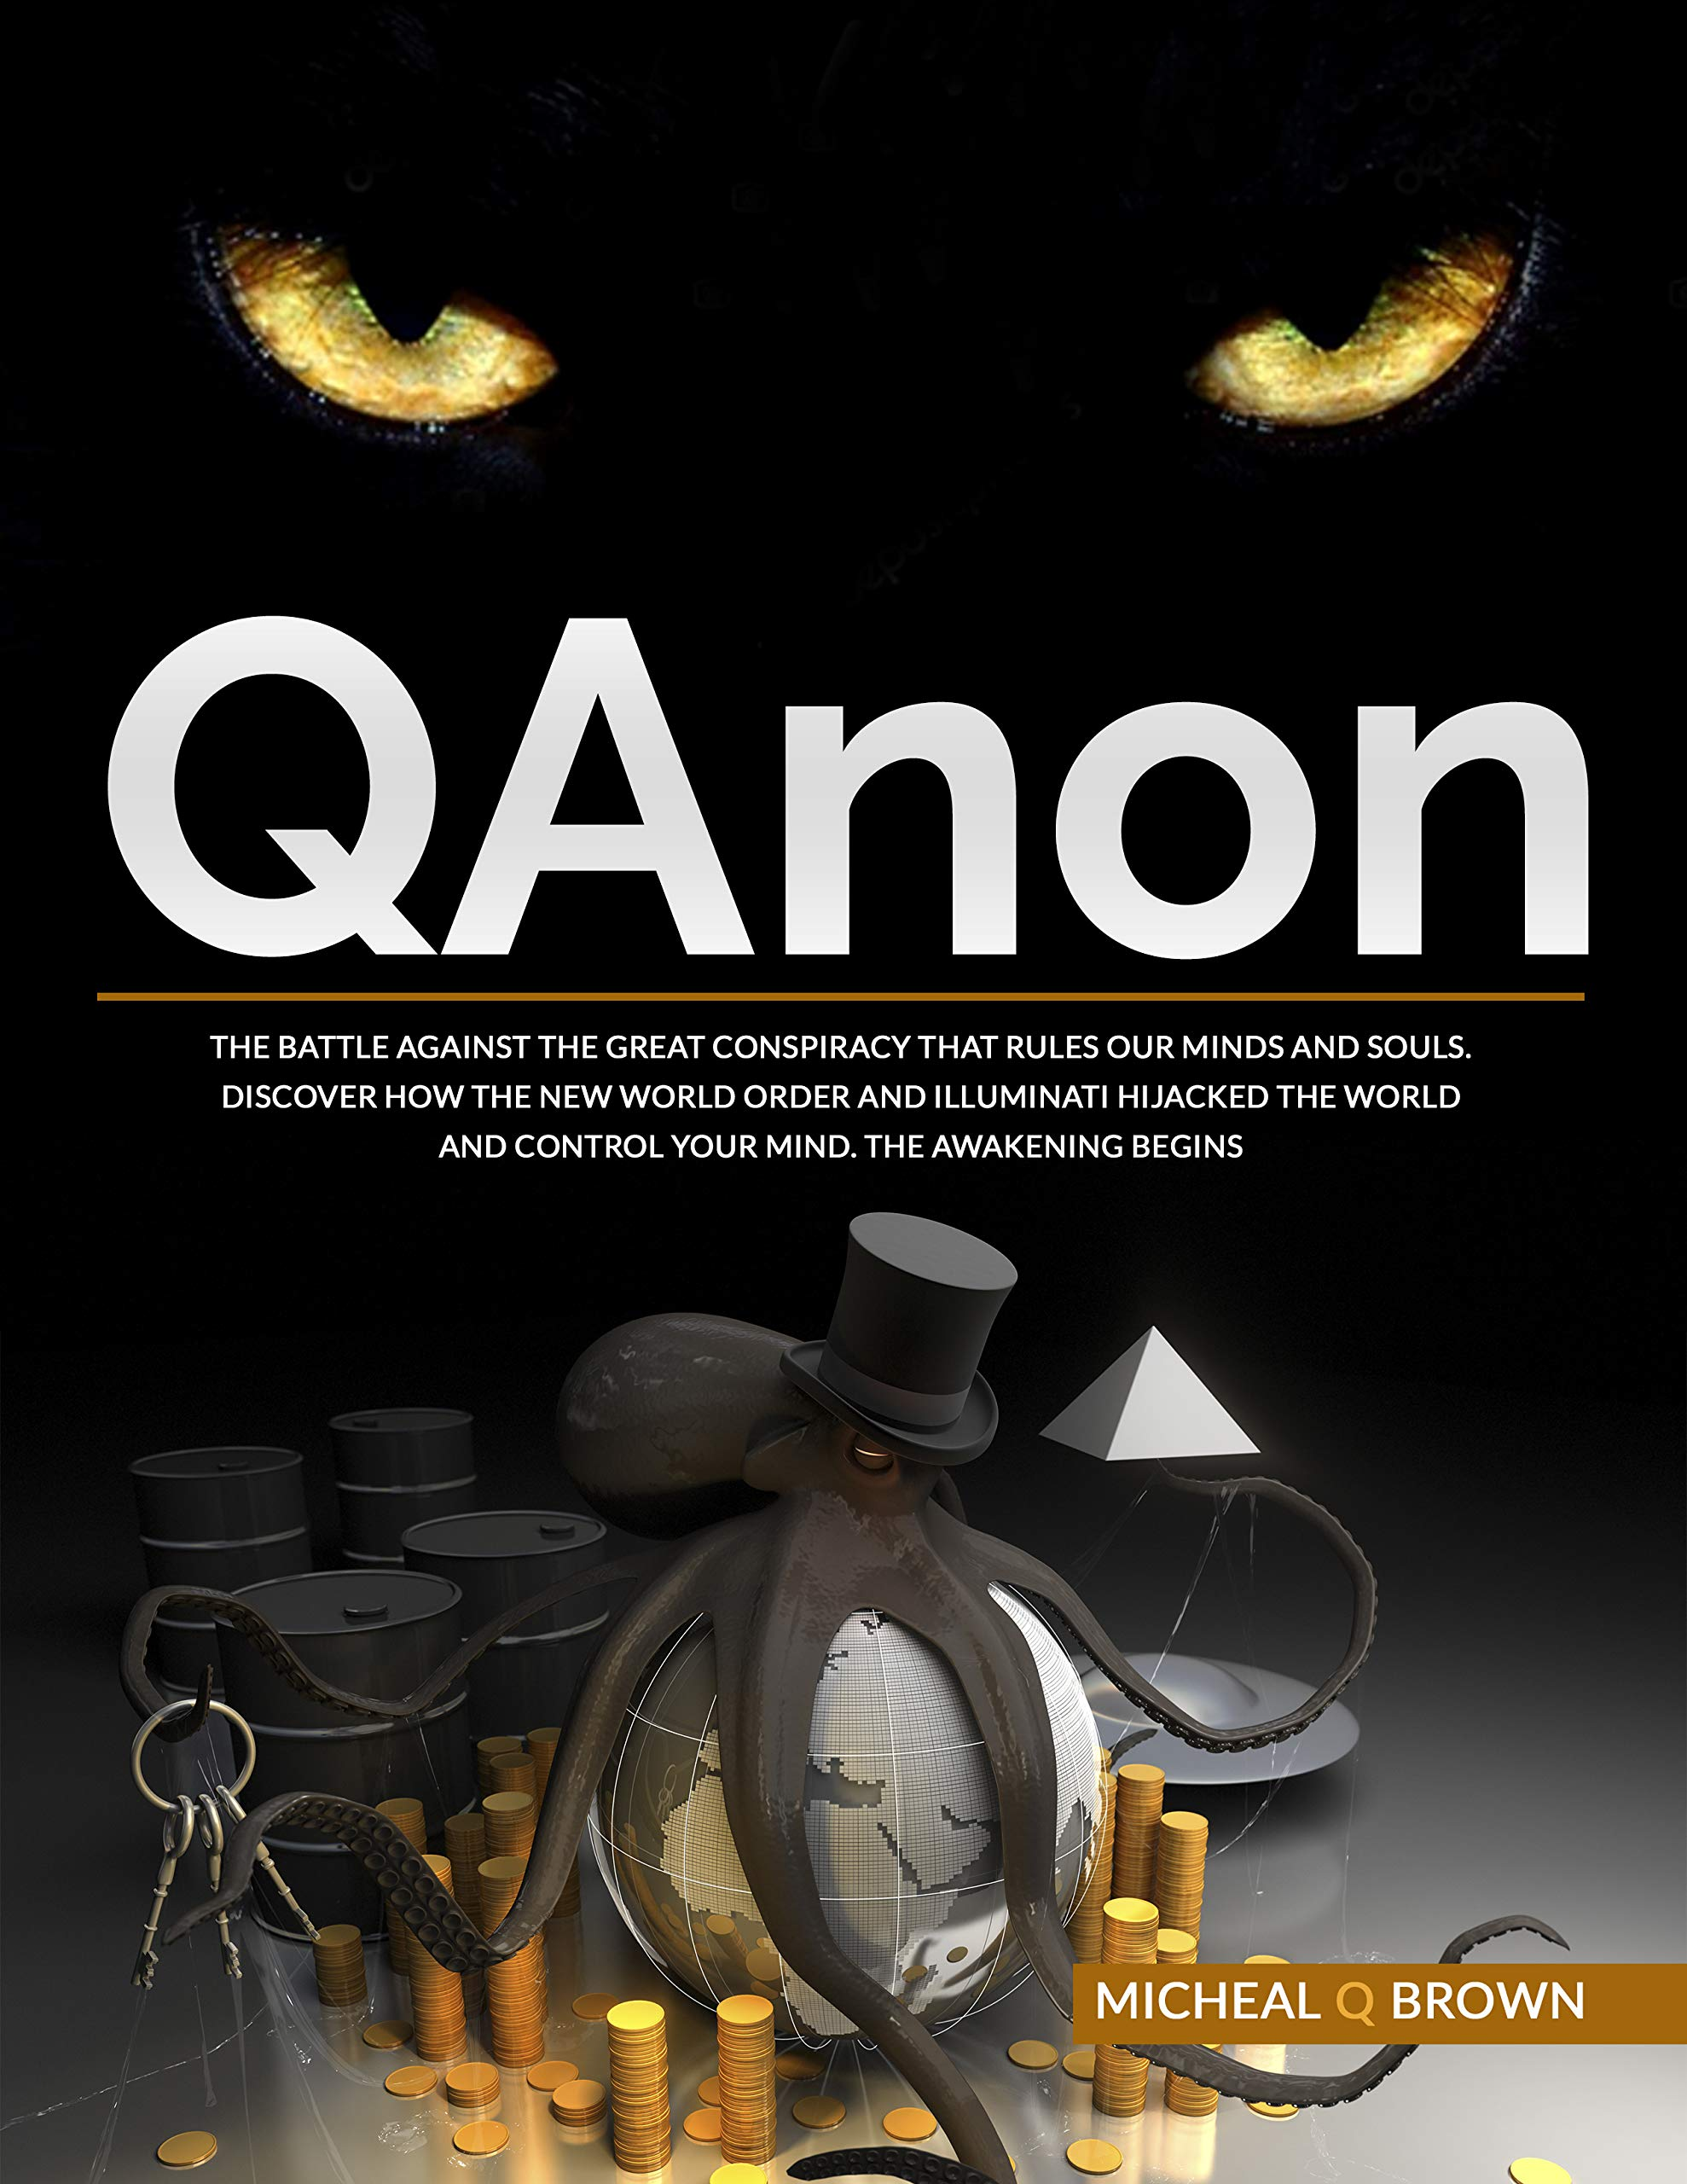 QAnon: The Battle against the Great Conspiracy that Rules our Minds and Souls. Discover How the New World Order and Illuminati Hijacked the world and Control your Mind. The Awakening Begins